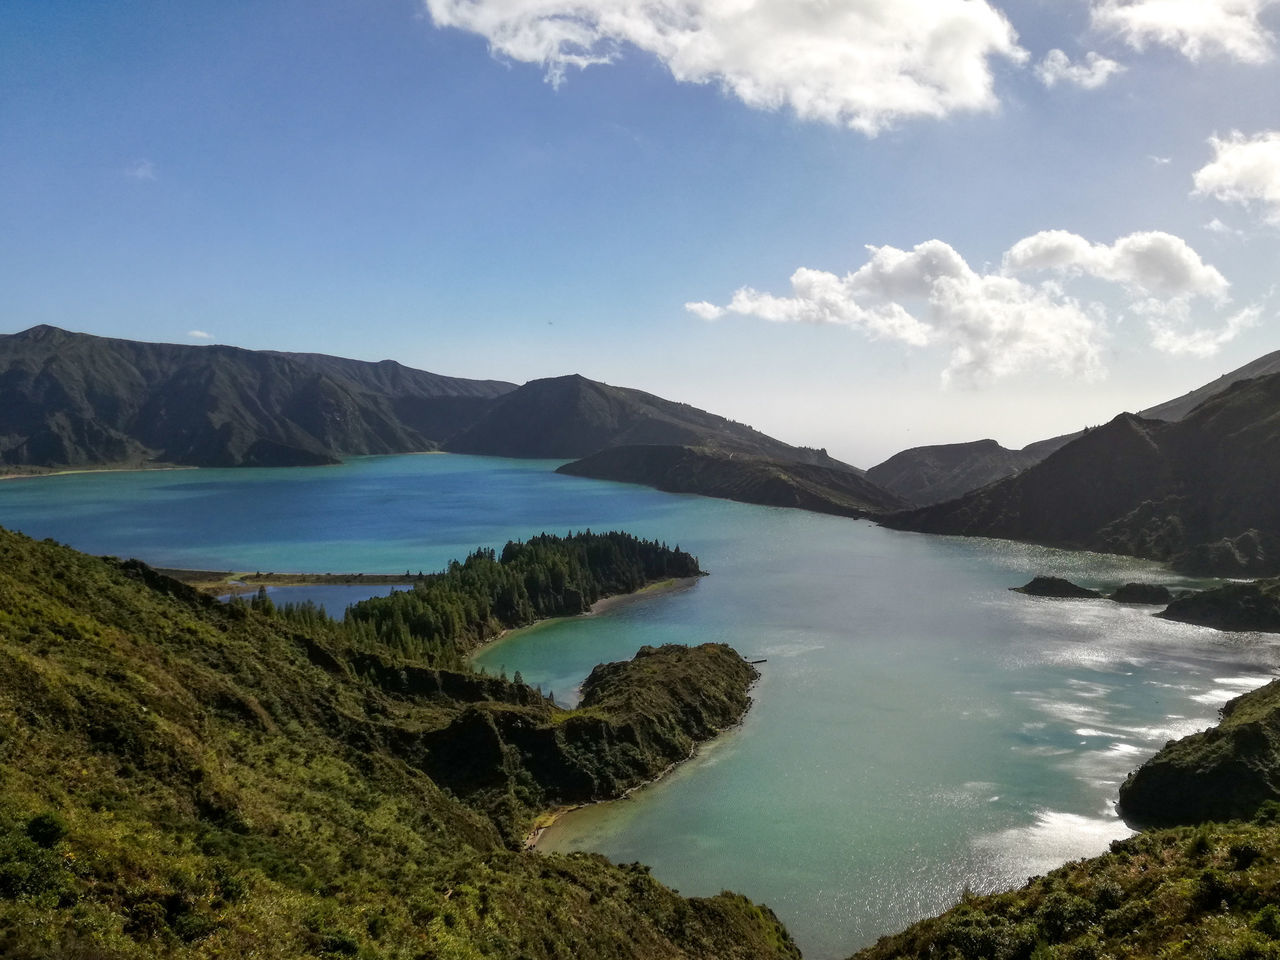 Landscape Mountain Lake Water Outdoors No People Tree Nature Sky Day Lakeside Lake View Contrast Travel Azores Freshness Tranquility Nature Scenics Blue Beauty In Nature Tranquil Scene Lakeview Lakes  Blue Sky